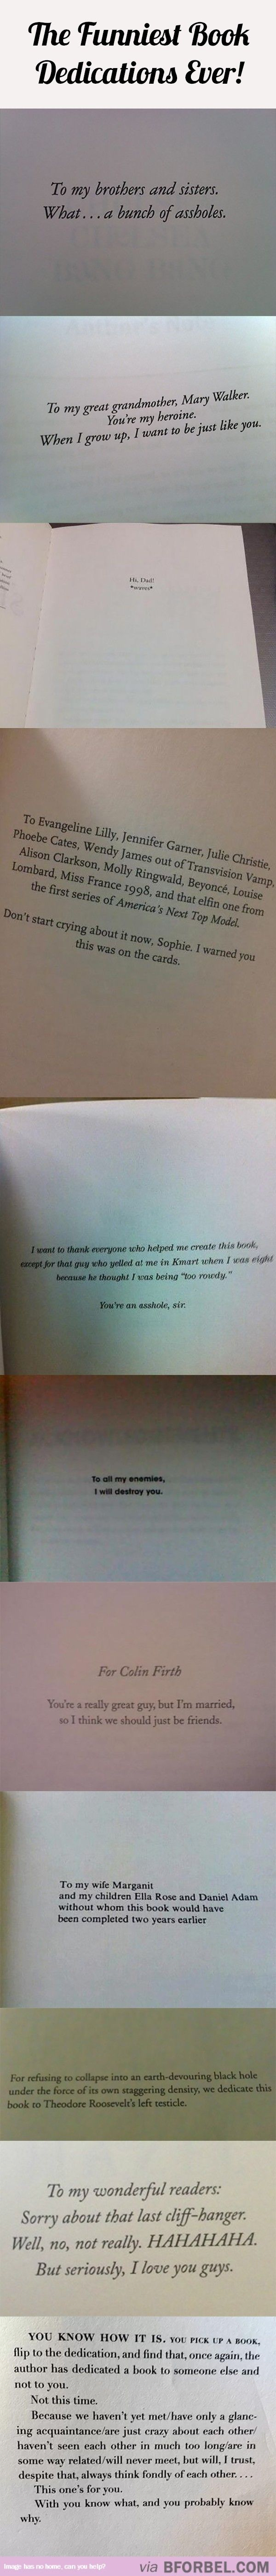 I always, ALWAYS read the Book Dedication before starting a novel. They're either sassy and witty or sincere and heart-melting. And Rick Riordan will always be the best troll